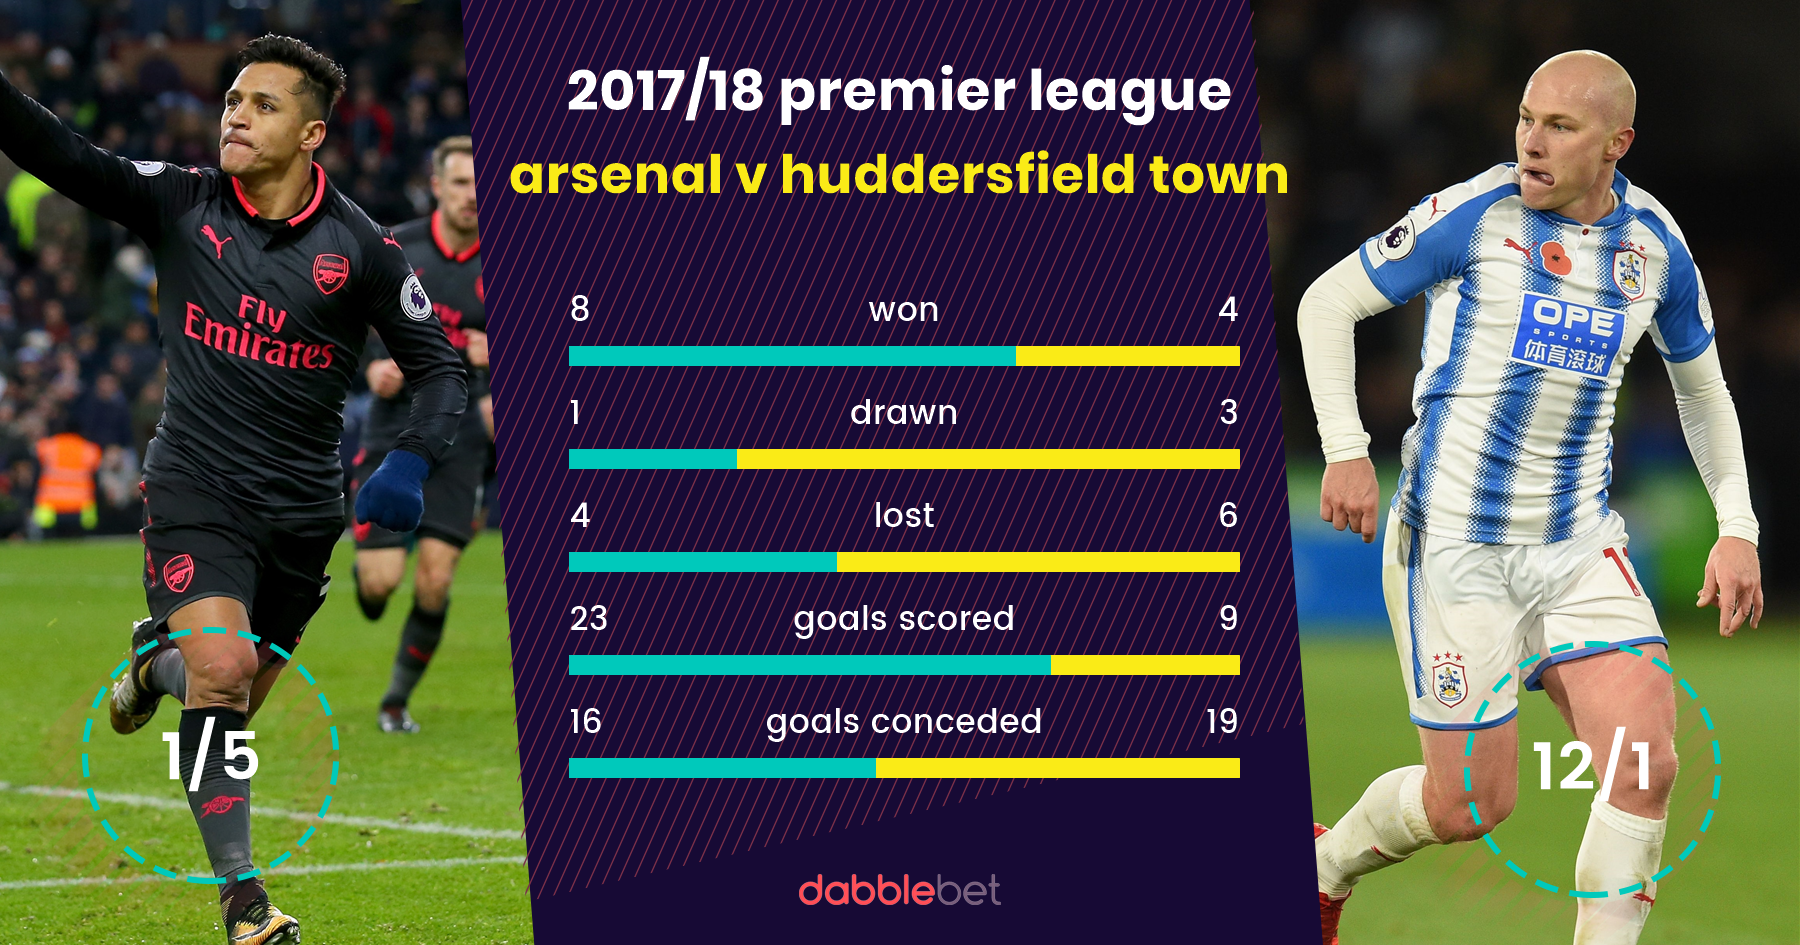 Arsenal Huddersfield Town graphic